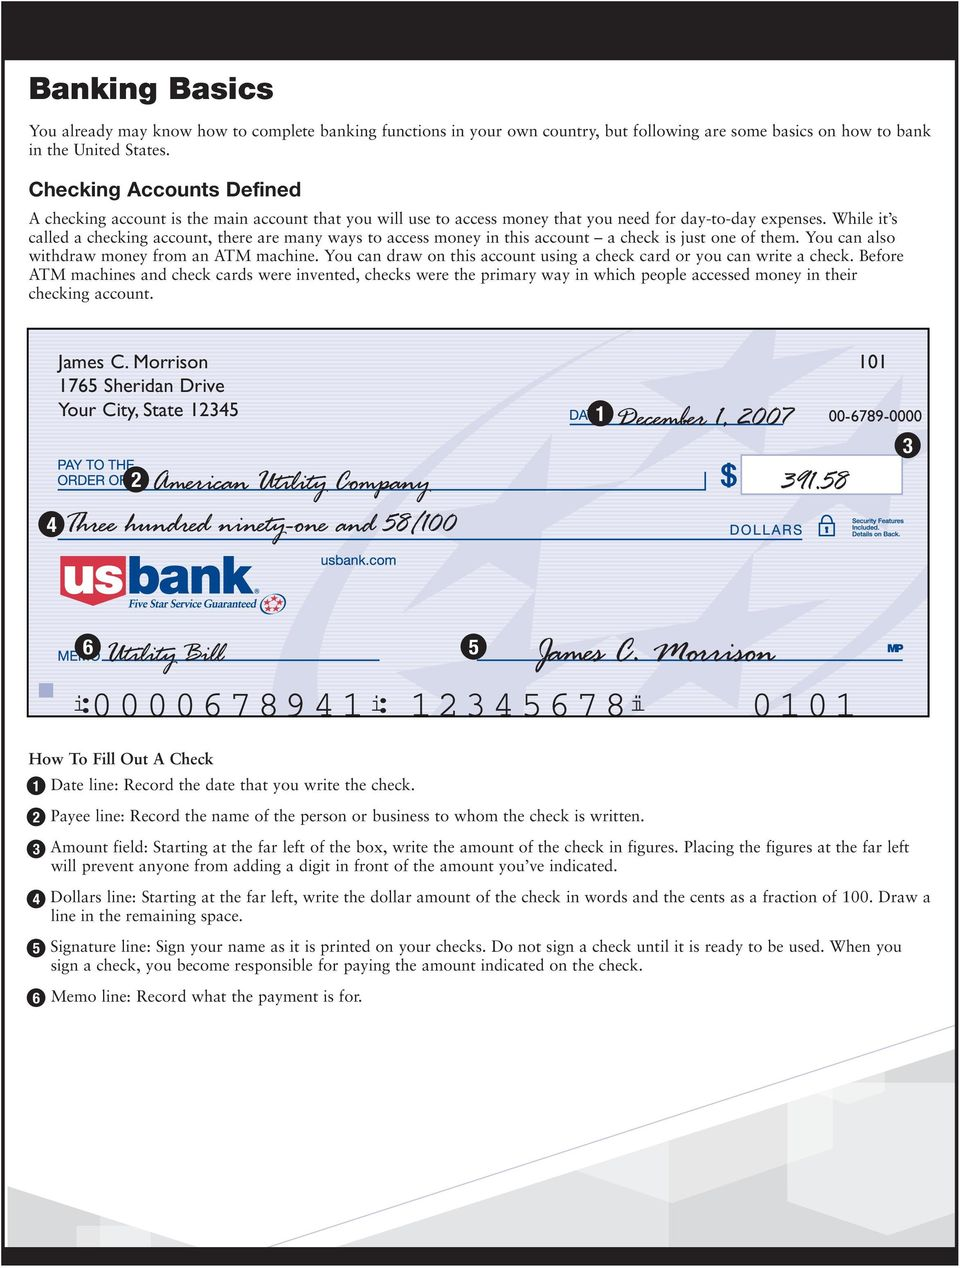 While it s called a checking account, there are many ways to access money in this account a check is just one of them. You can also withdraw money from an ATM machine.